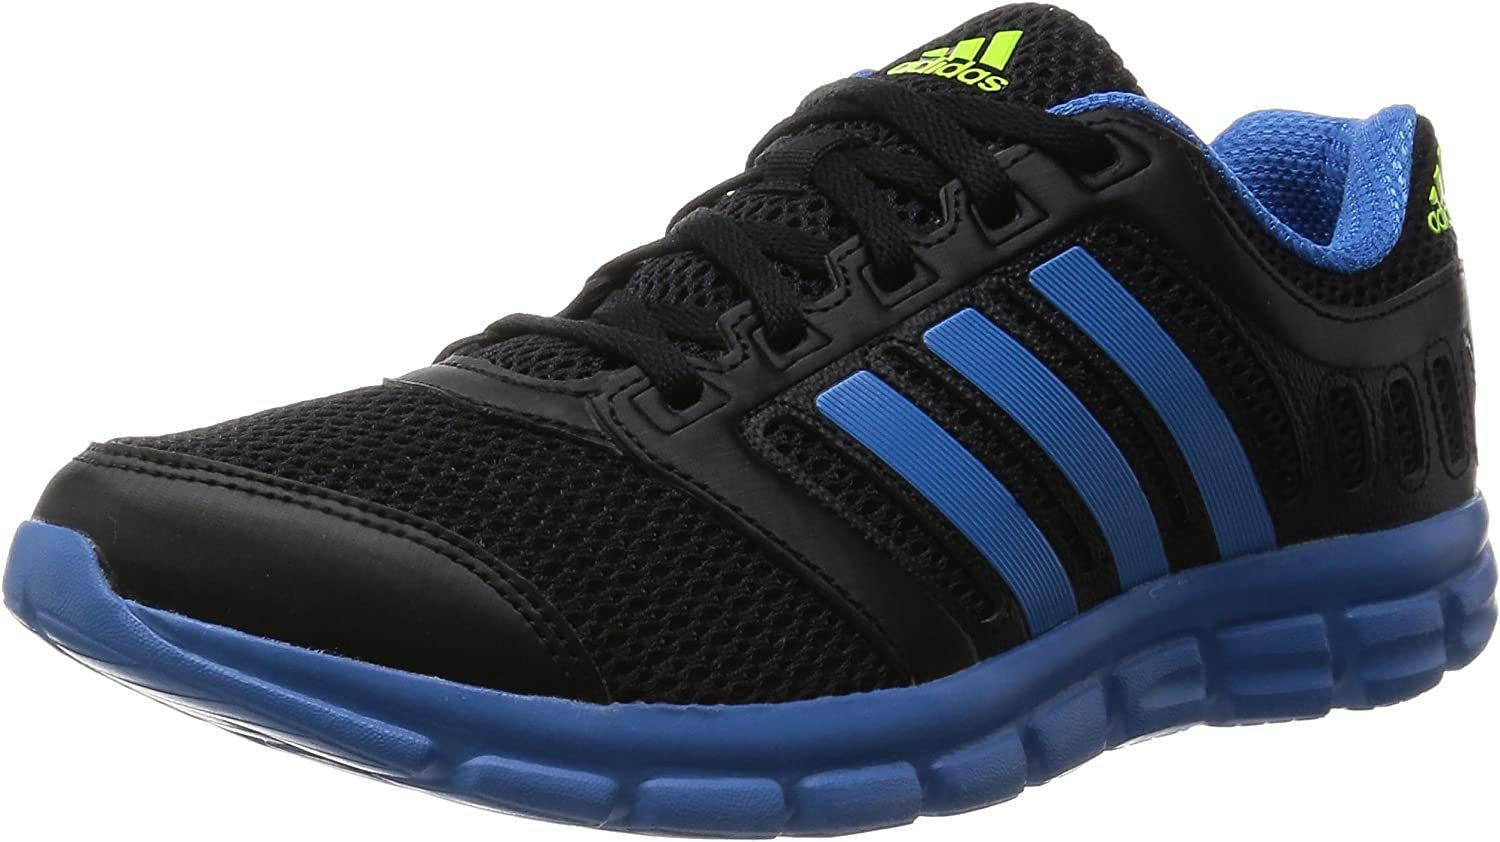 Adidas Breeze 101 2, Men's Derby Lace-Up